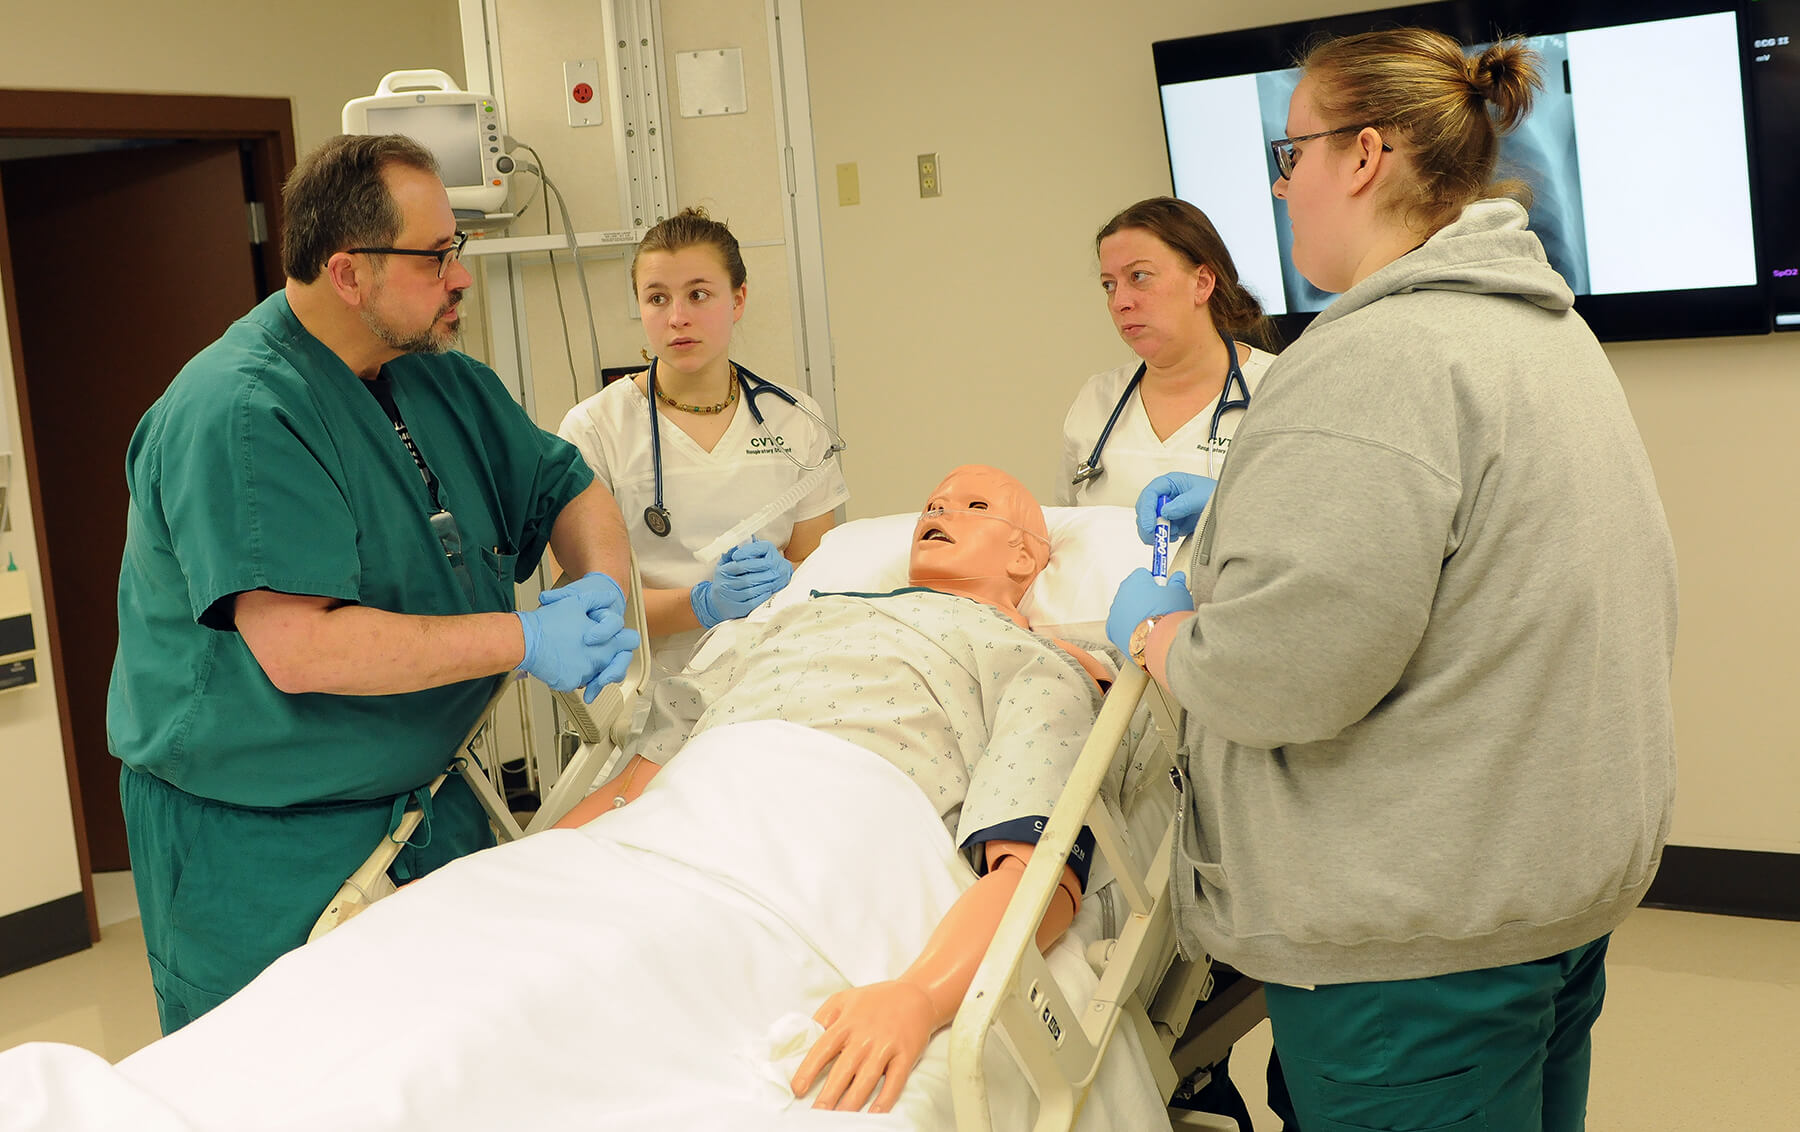 CVTC Respiratory Therapy Instructor Don Raymond, left, works with students in a medical simulation lab at CVTC in this 2018 file photo. Raymond, along with fellow instructor Theresa Meinen and several alumni, serve on the board of directors of the Wisconsin Society for Respiratory Therapy.